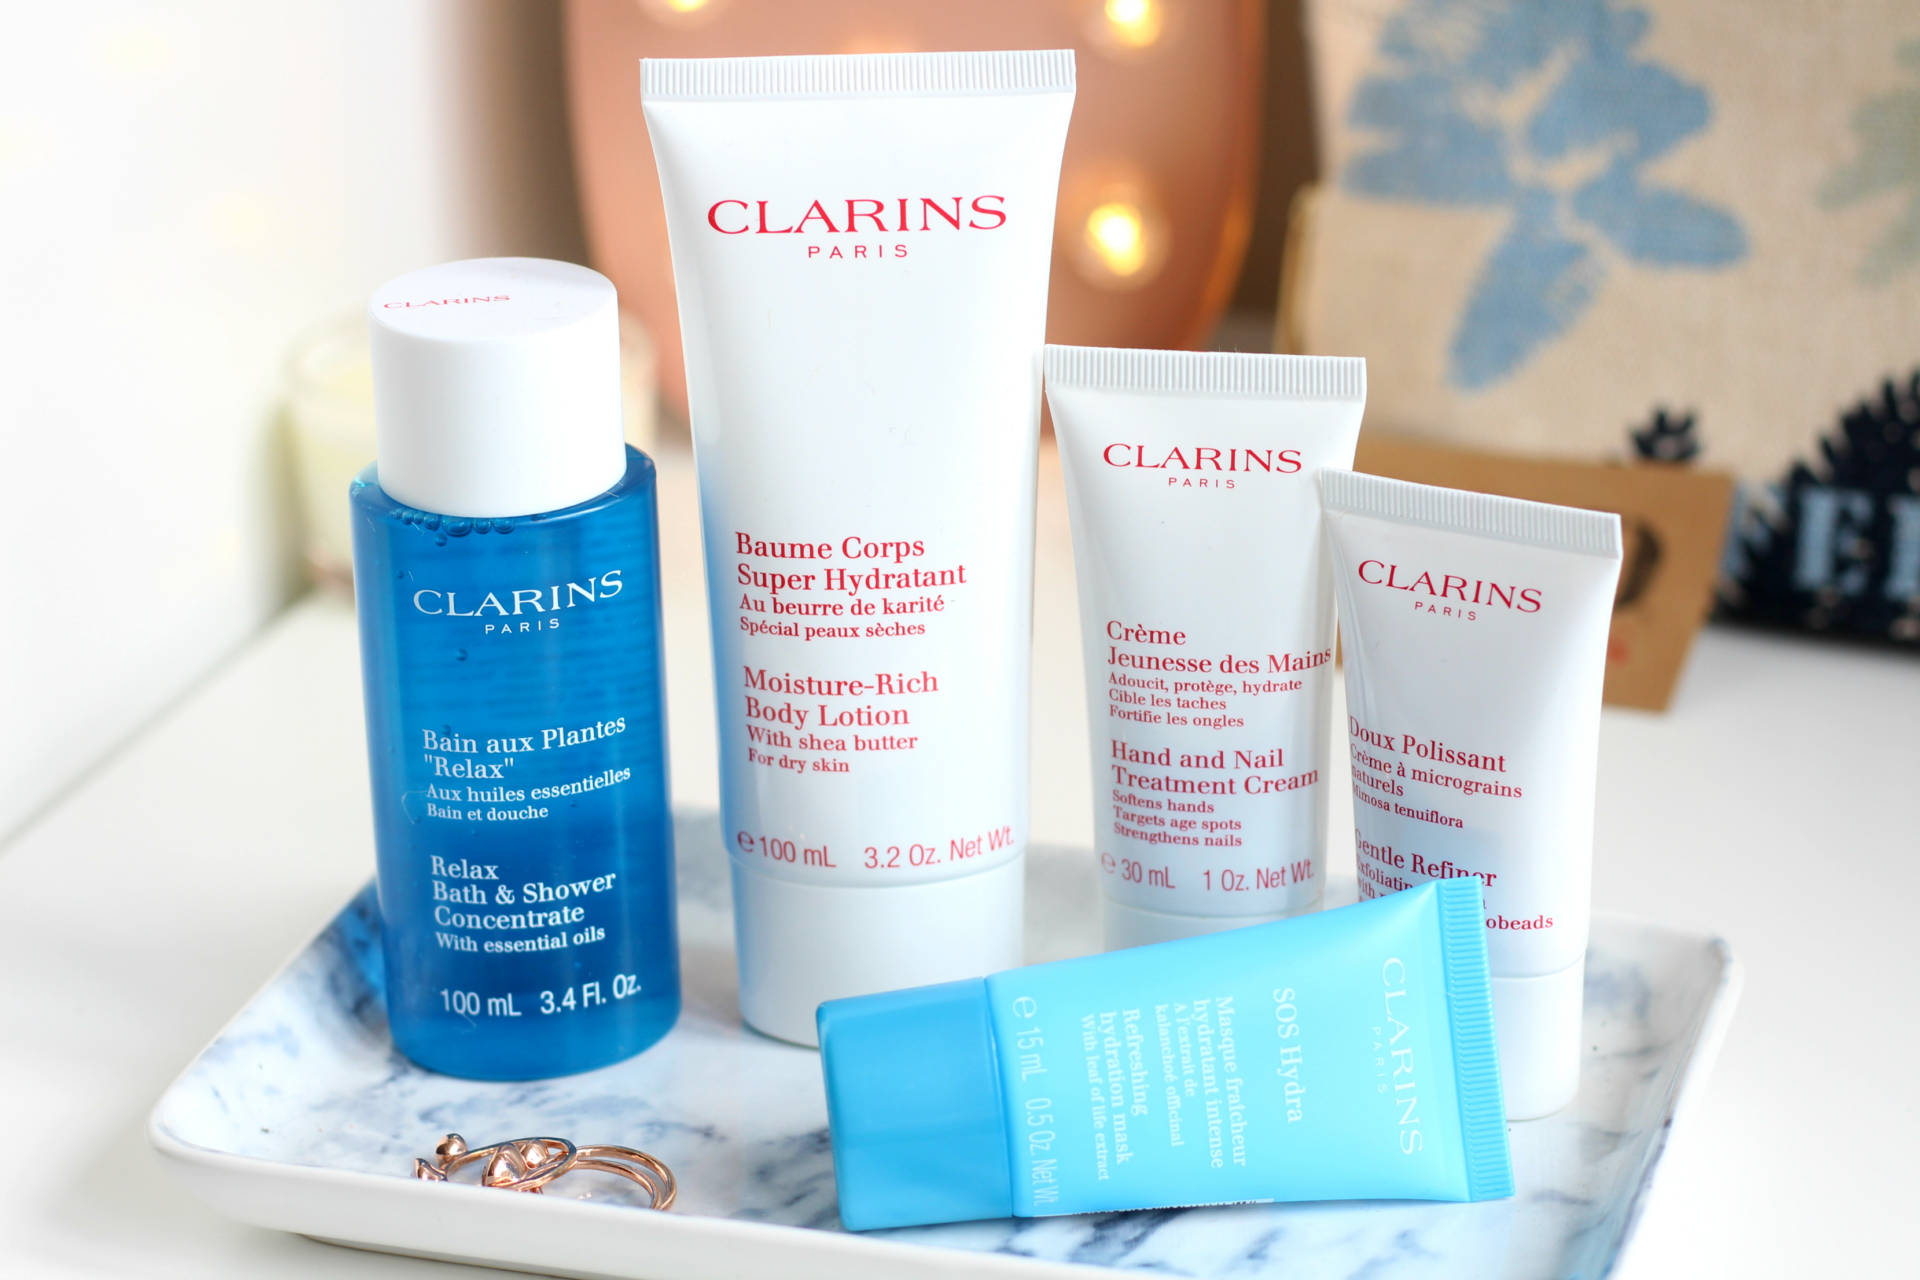 Making a difference with Clarins